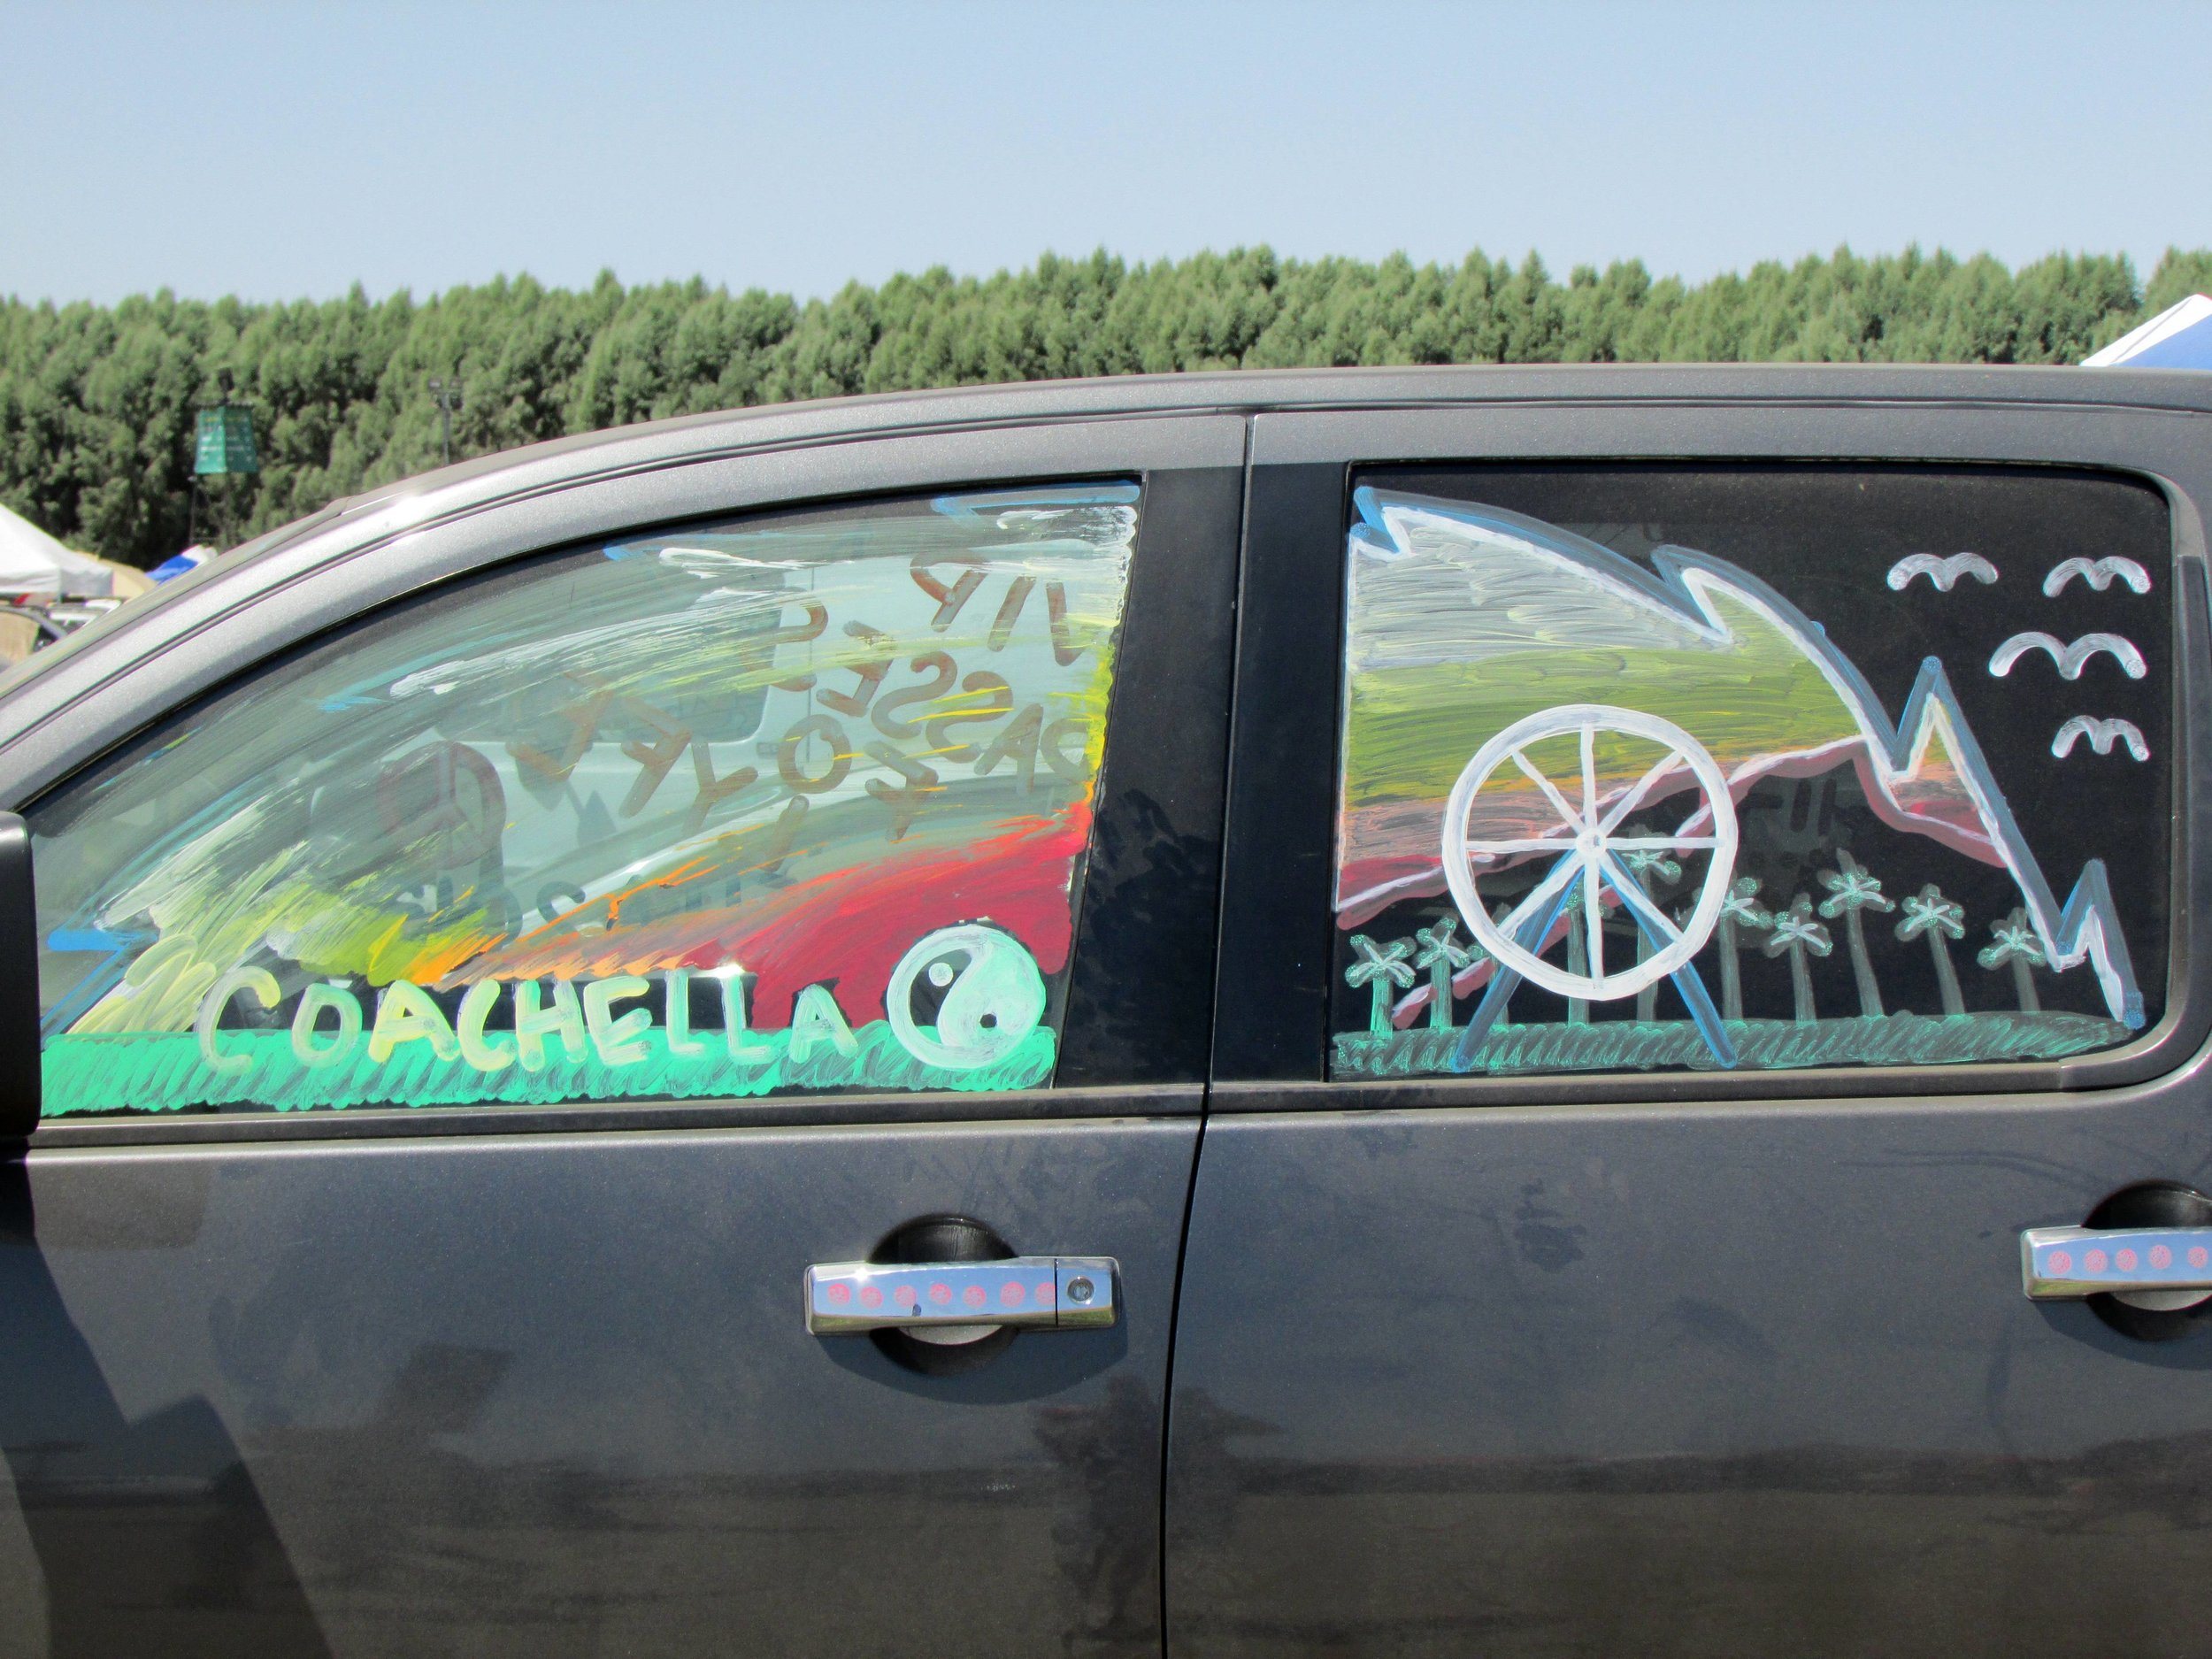 5 - Spotted some entries to Carpoolchella, Coachella's sustainability initiative & ticket lottery.JPG